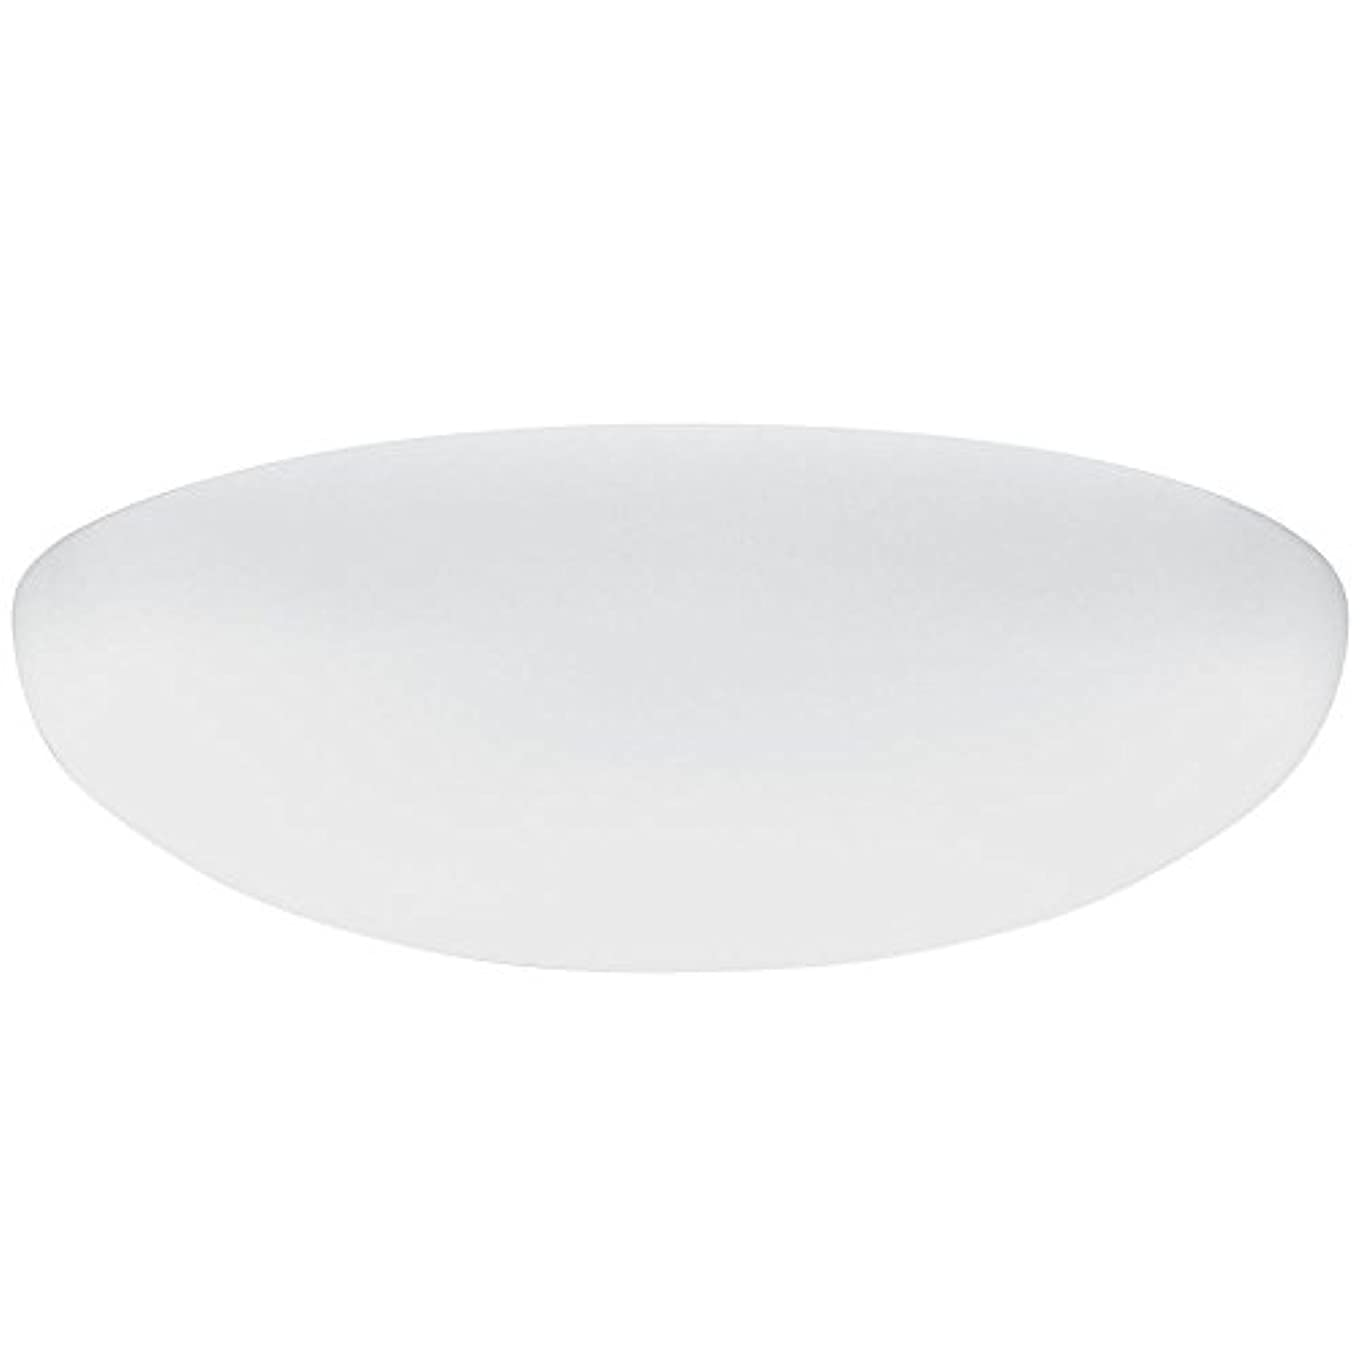 ブレーク神社浜辺Lithonia Lighting DFMLRL14 M4 Replacement Diffuser, 14, White by Lithonia Lighting